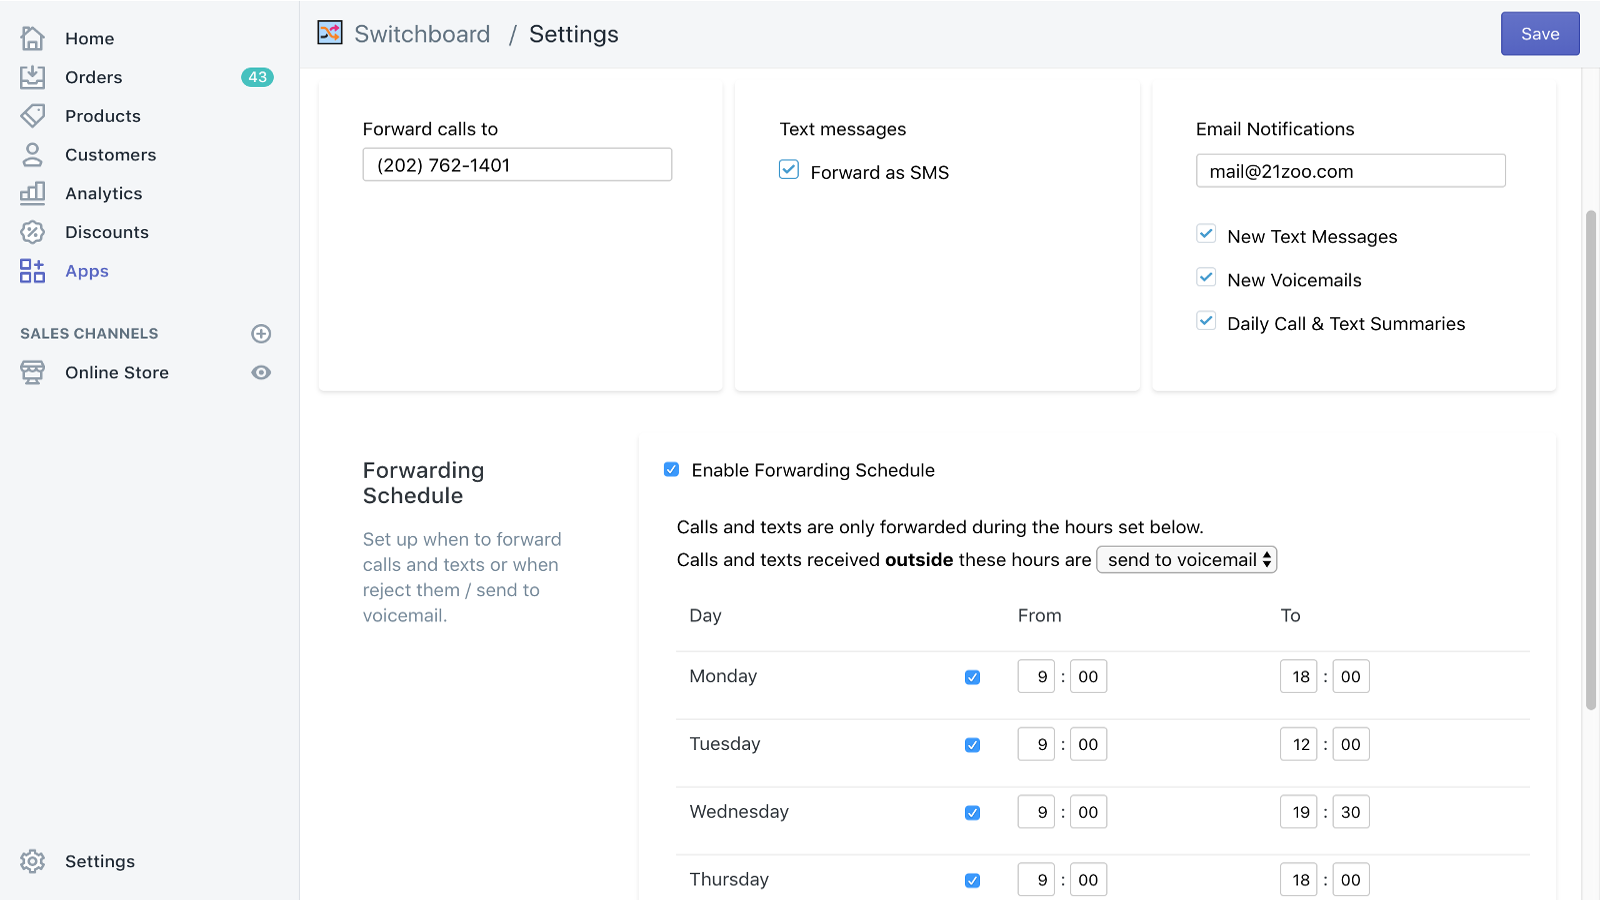 Settings and Schedule